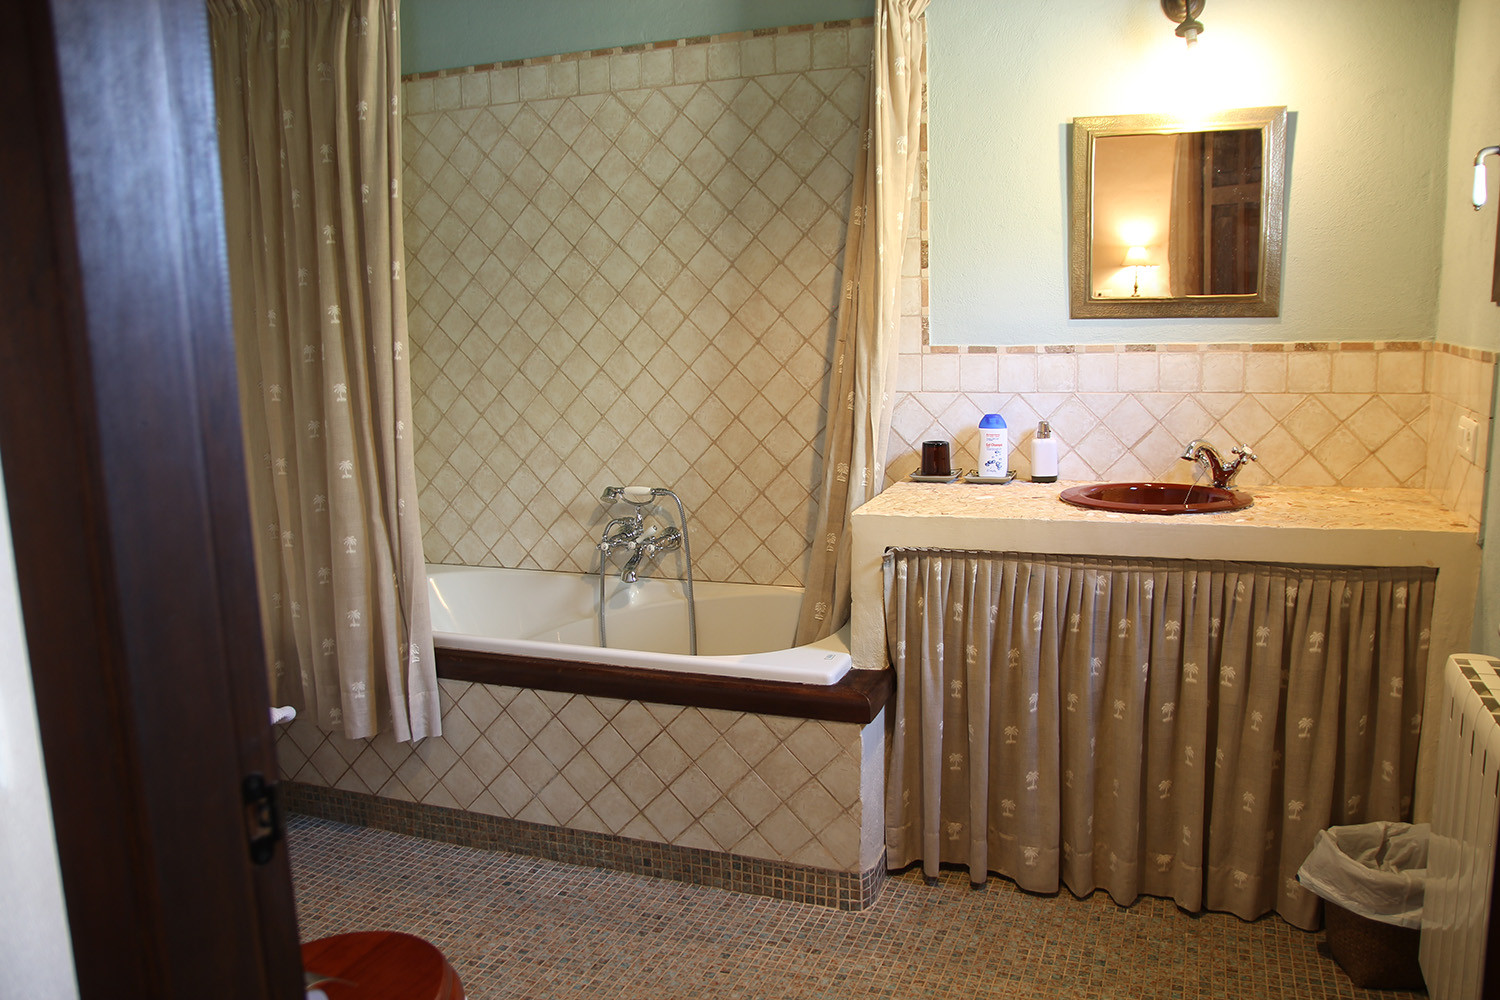 The bathroom of the Junior Suite